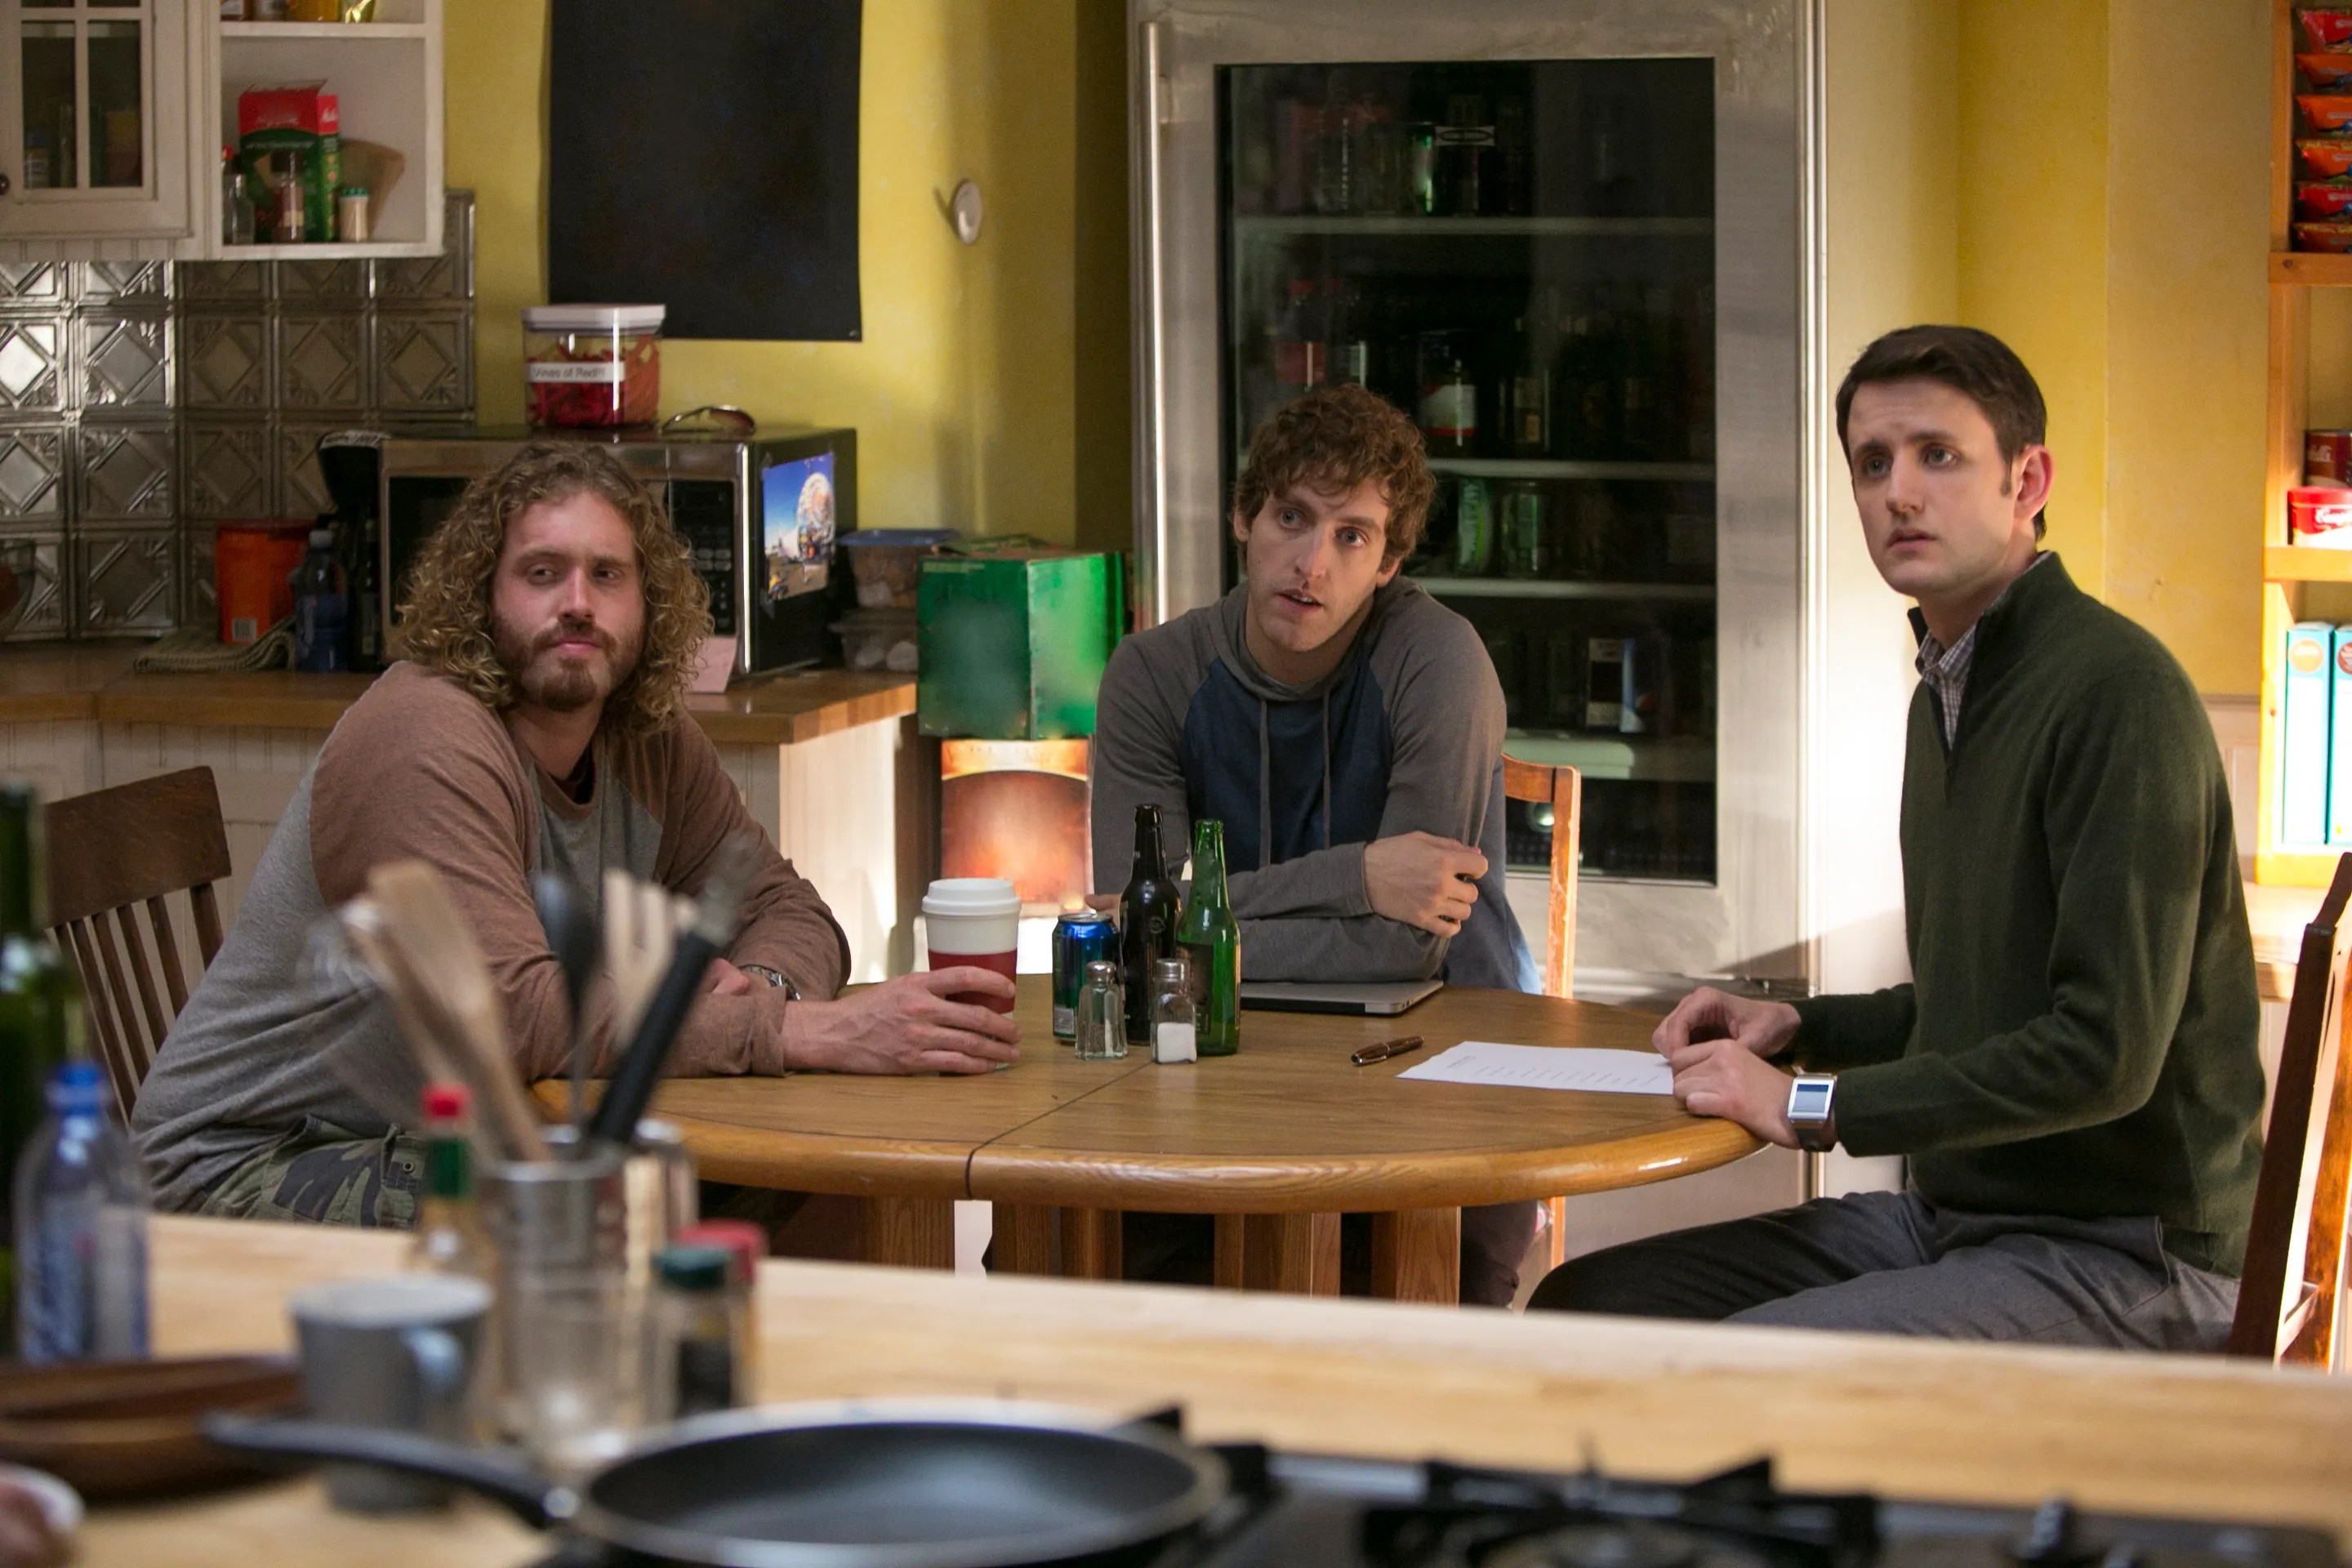 Fullsize Of Silicon Valley Watch Online Free